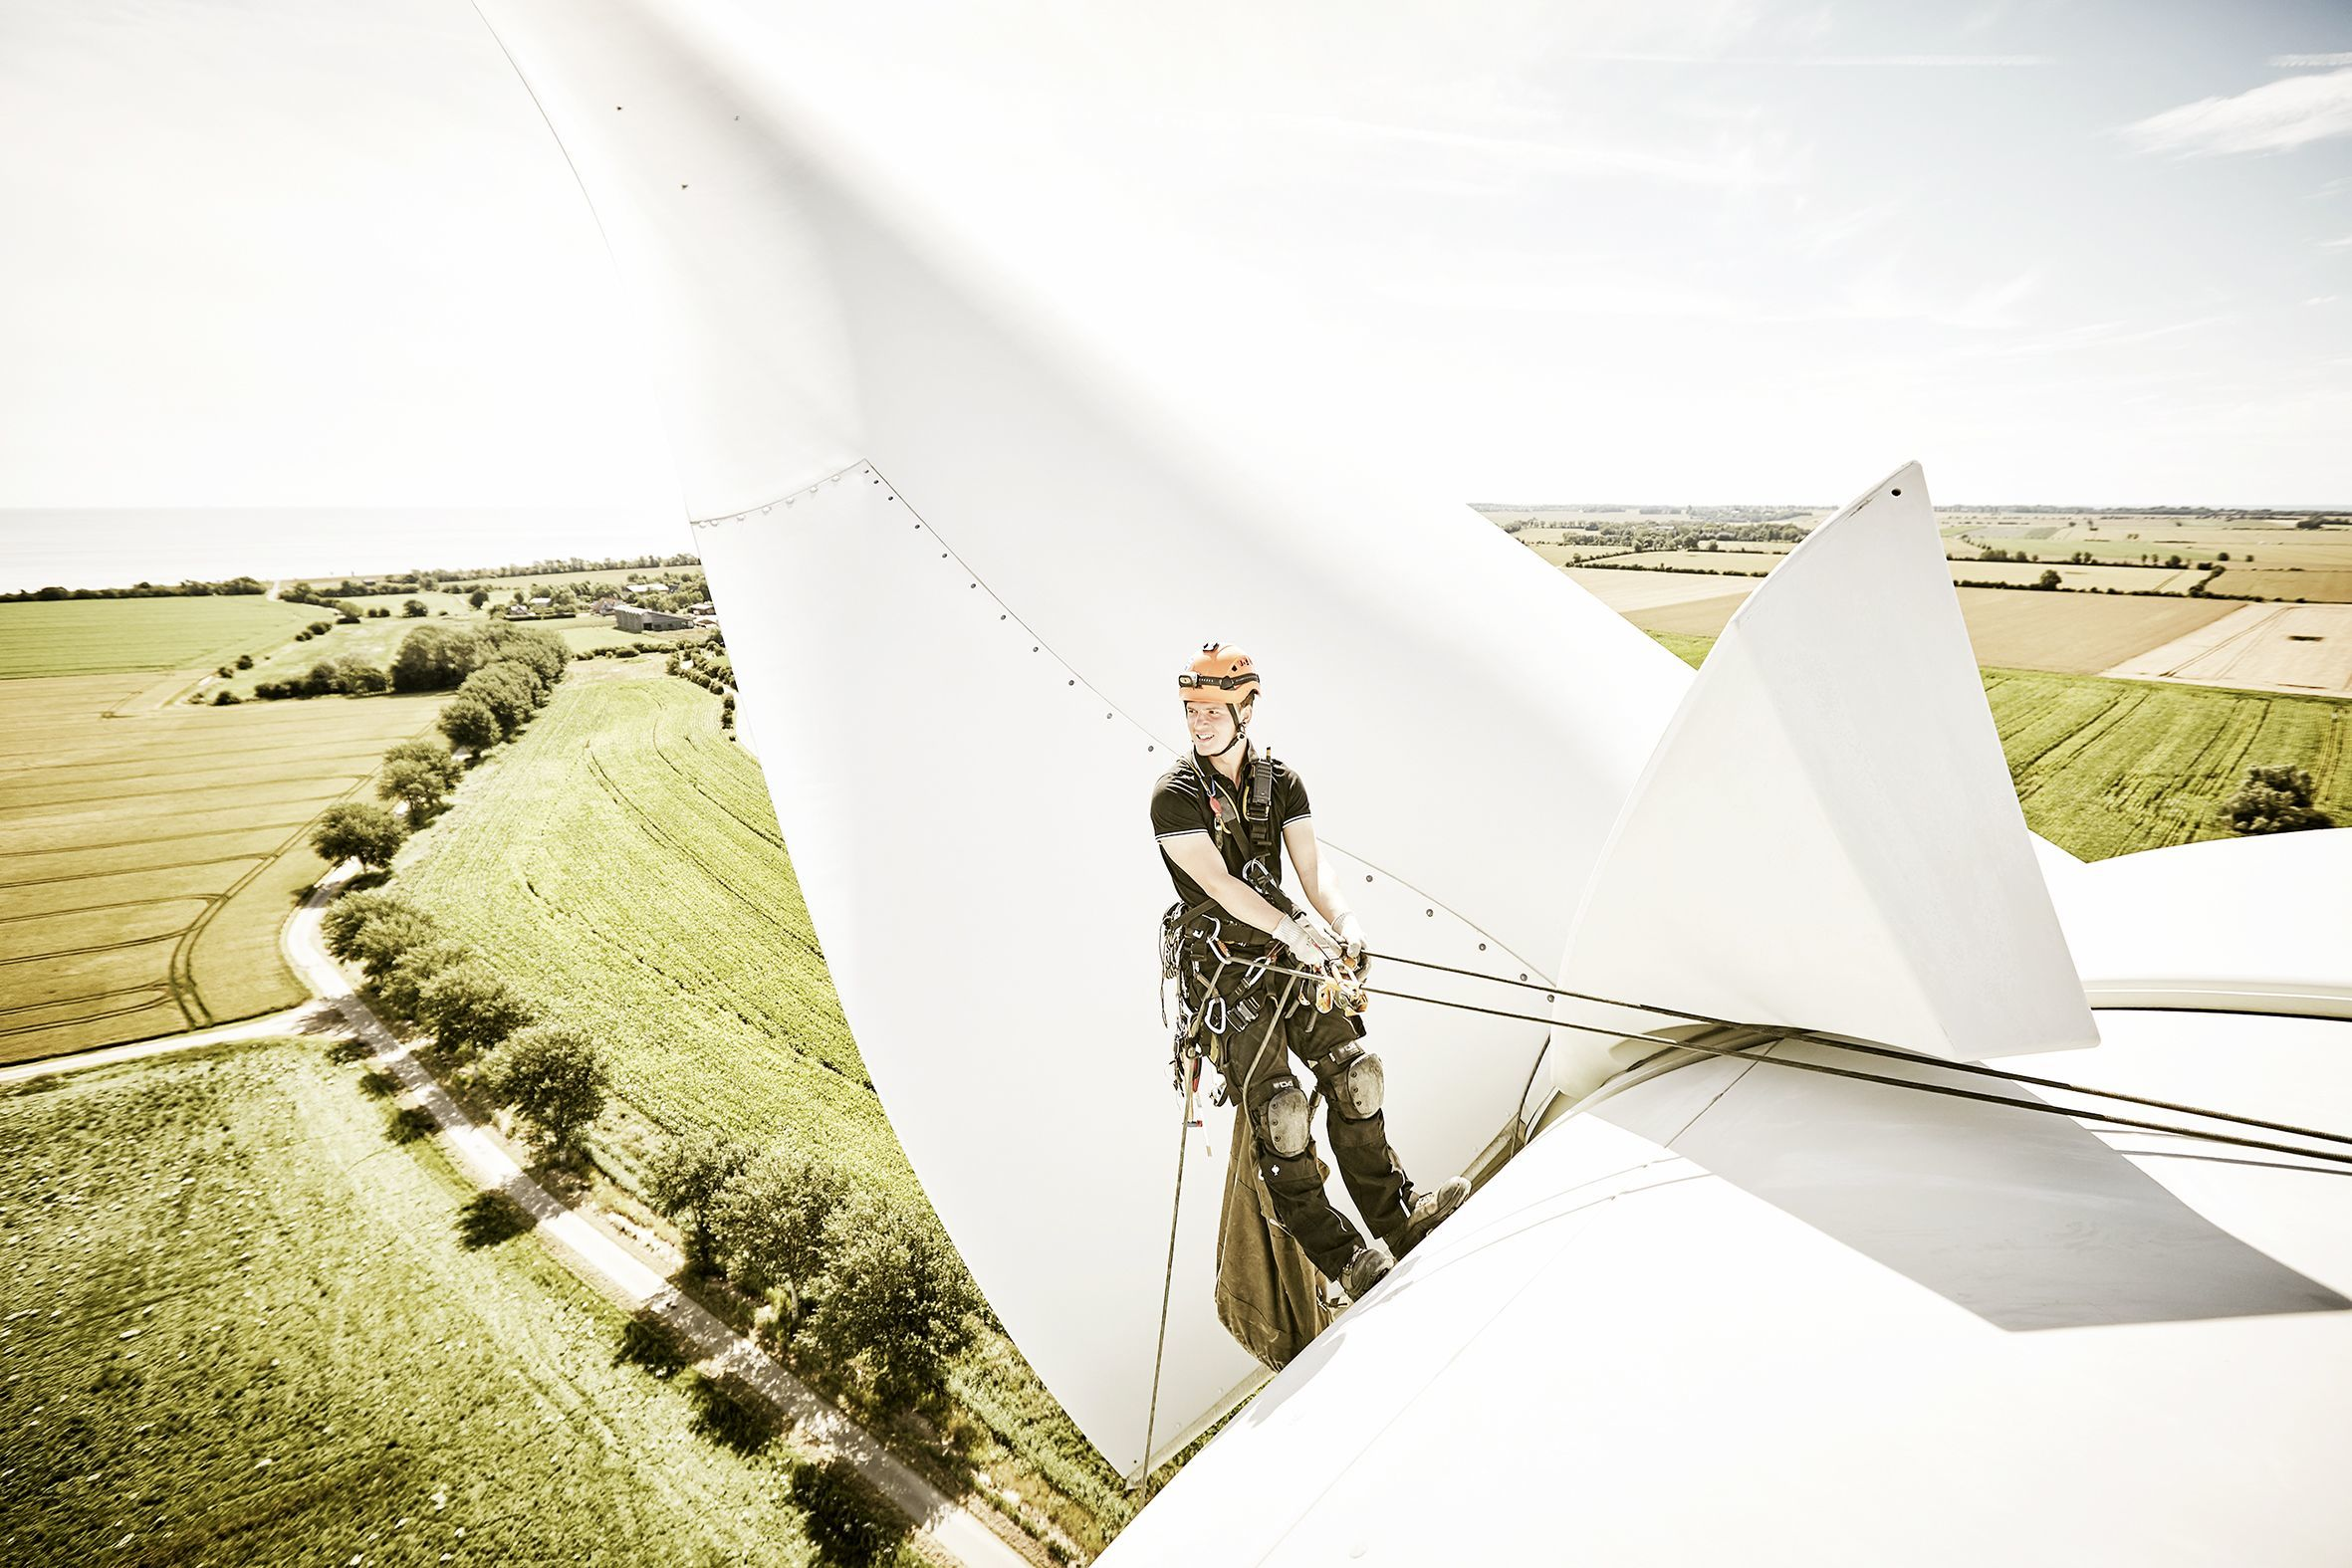 Industrial climber abseiling down a wind turbine with a magnificent view behind him.